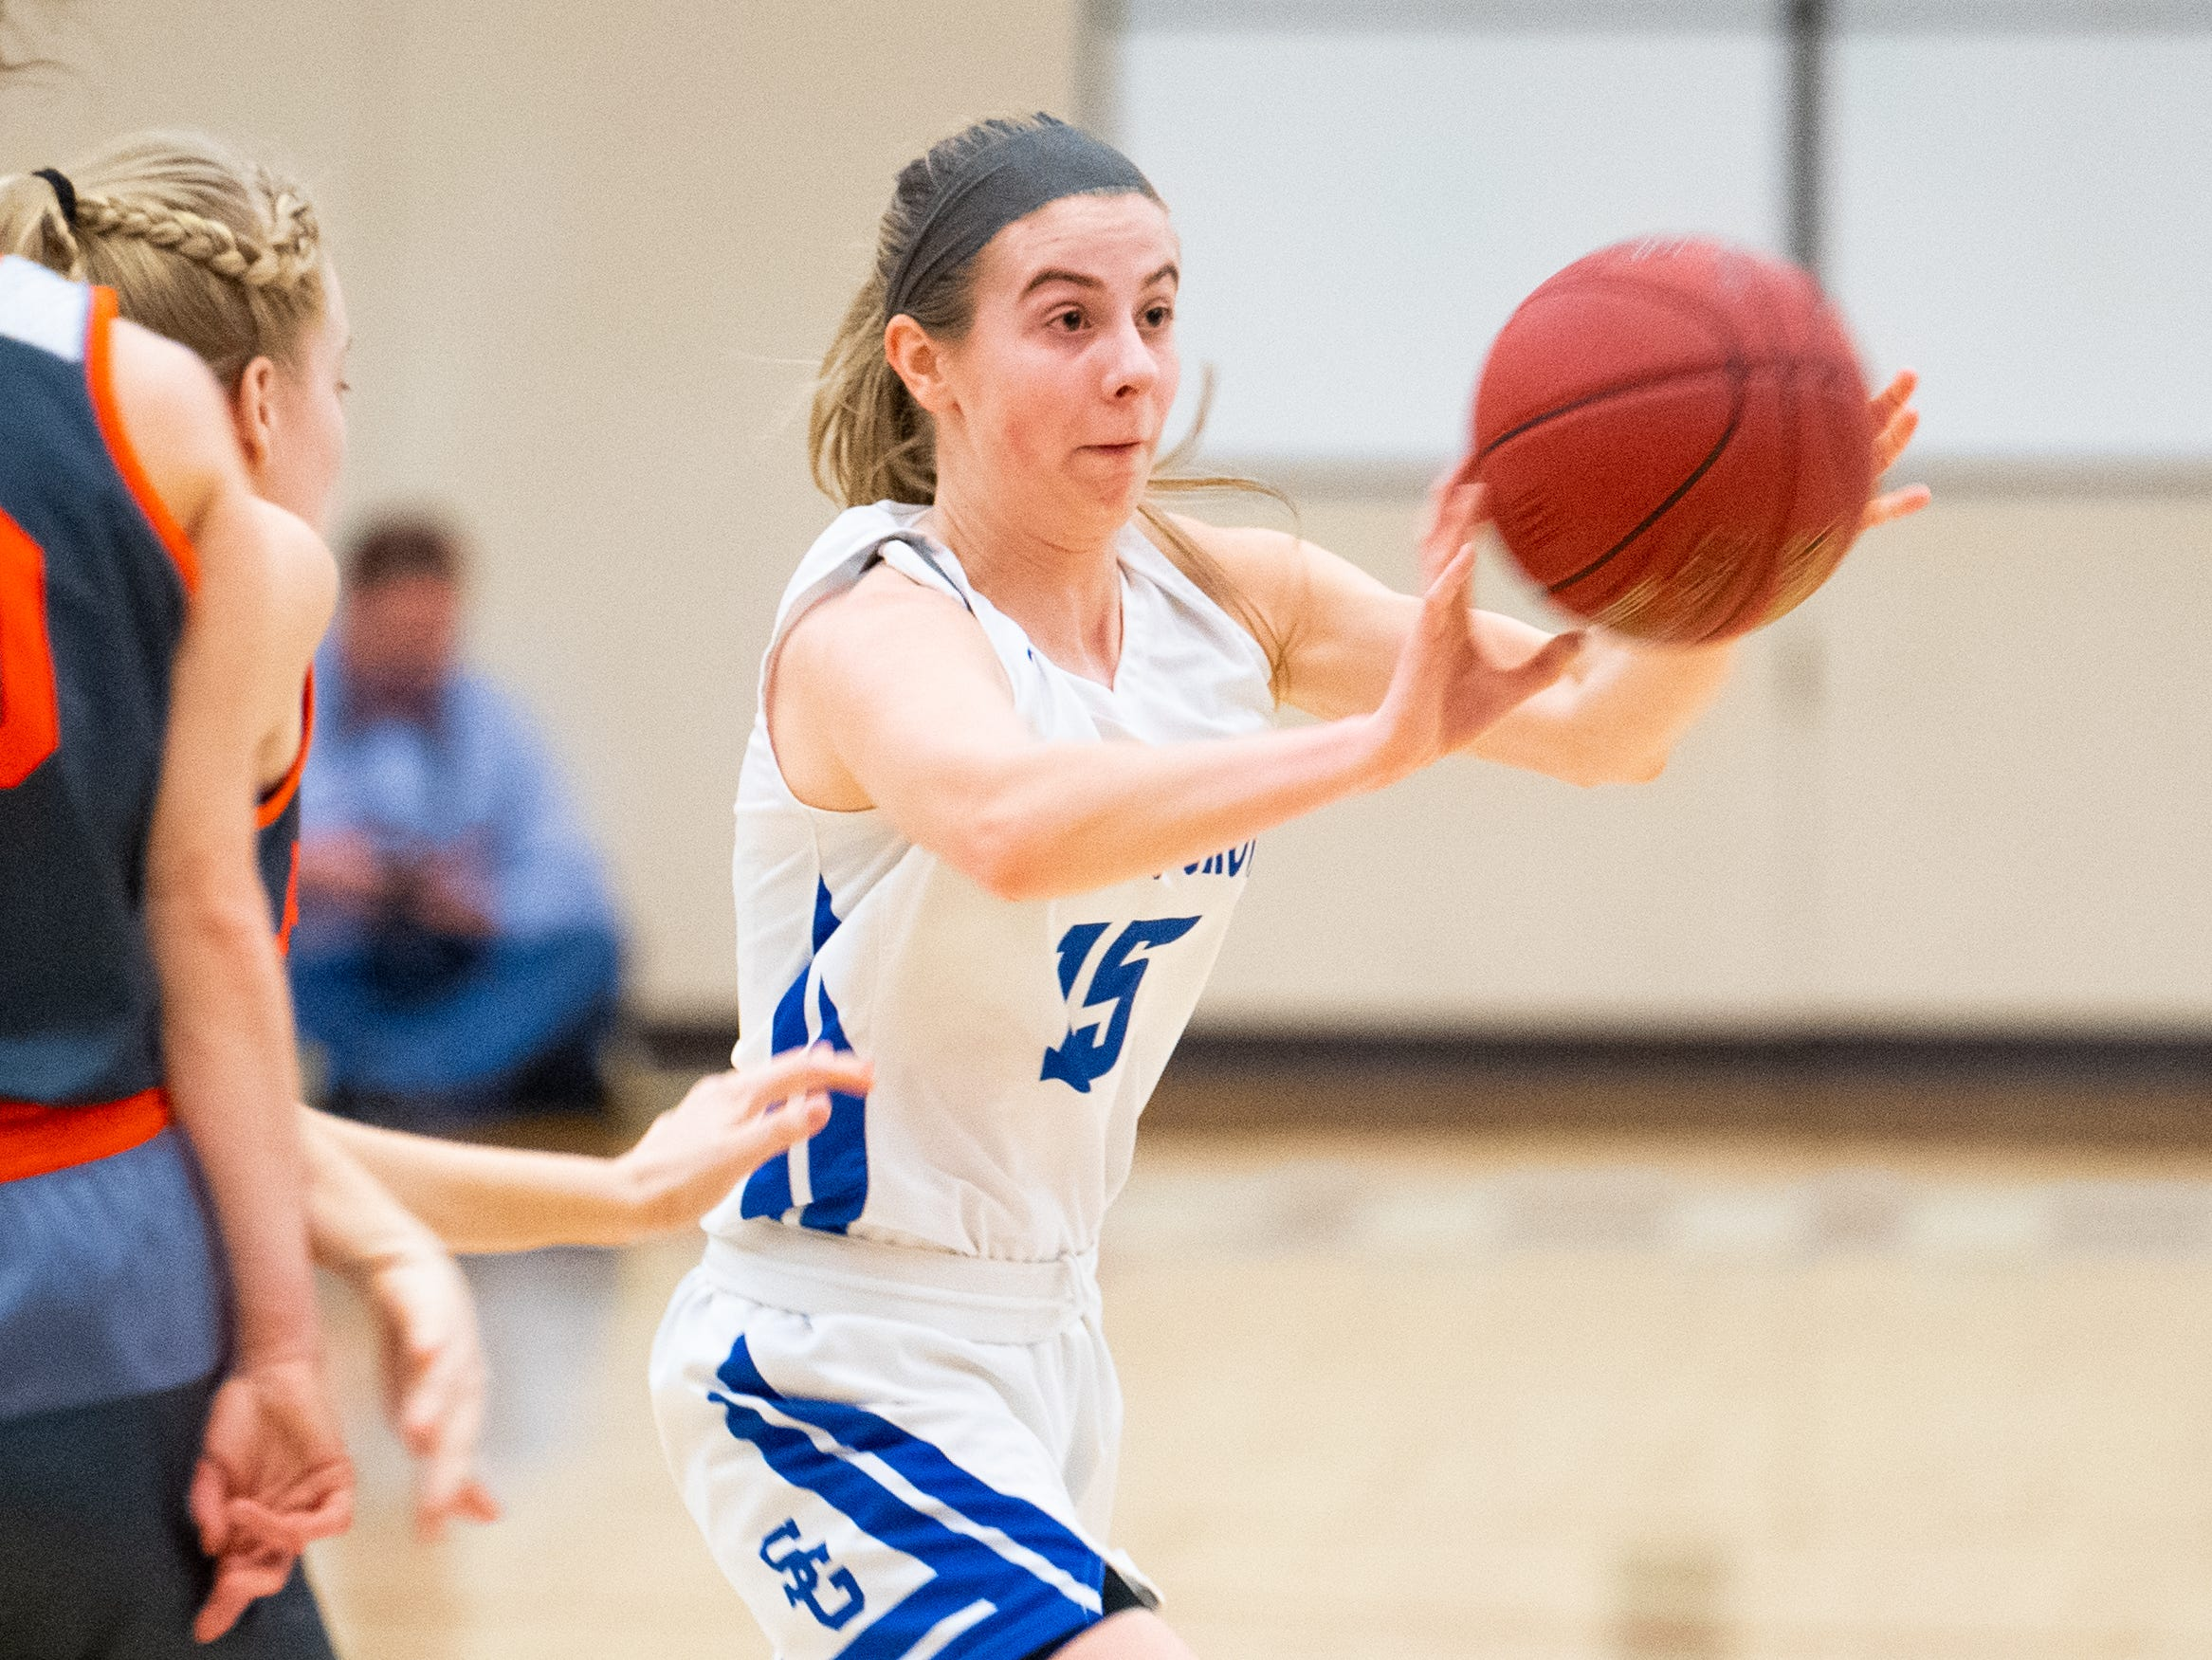 Lexi Hoffman (15) passes to a teammate during the District 3 Class 5A girls' basketball quarterfinal between Spring Grove and Palmyra, Friday, February 22, 2019 at Spring Grove Area High School. The Cougars defeated the Rockets 43 to 41.